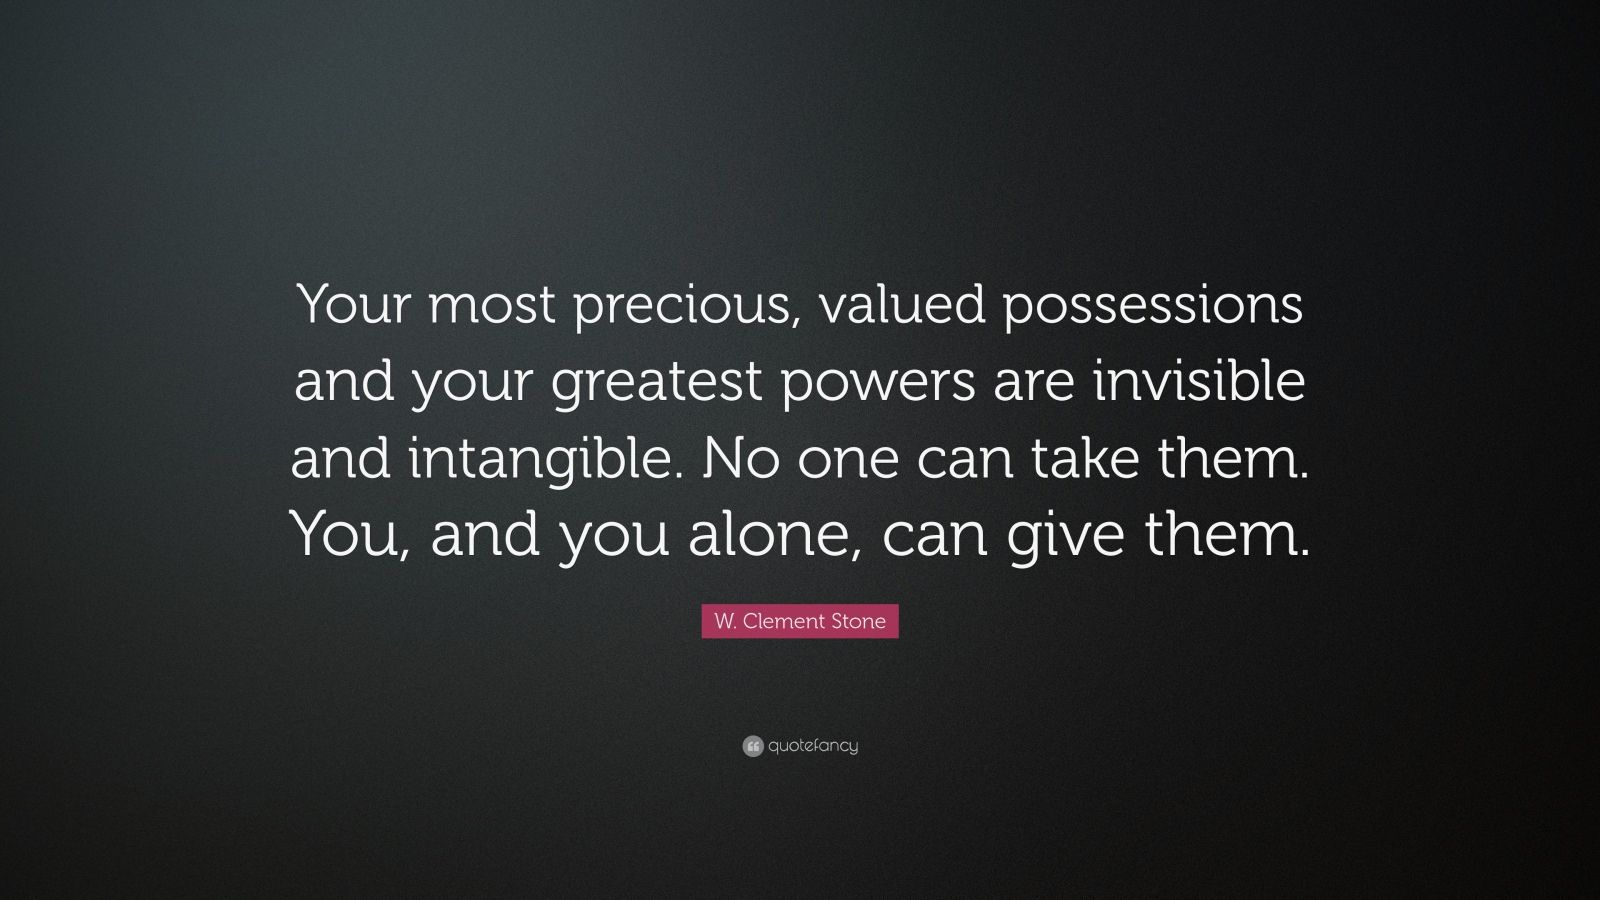 """W. Clement Stone Quote: """"Your most precious, valued possessions and your greatest powers are invisible and intangible. No one can take them. You, and you alone, can give them."""""""